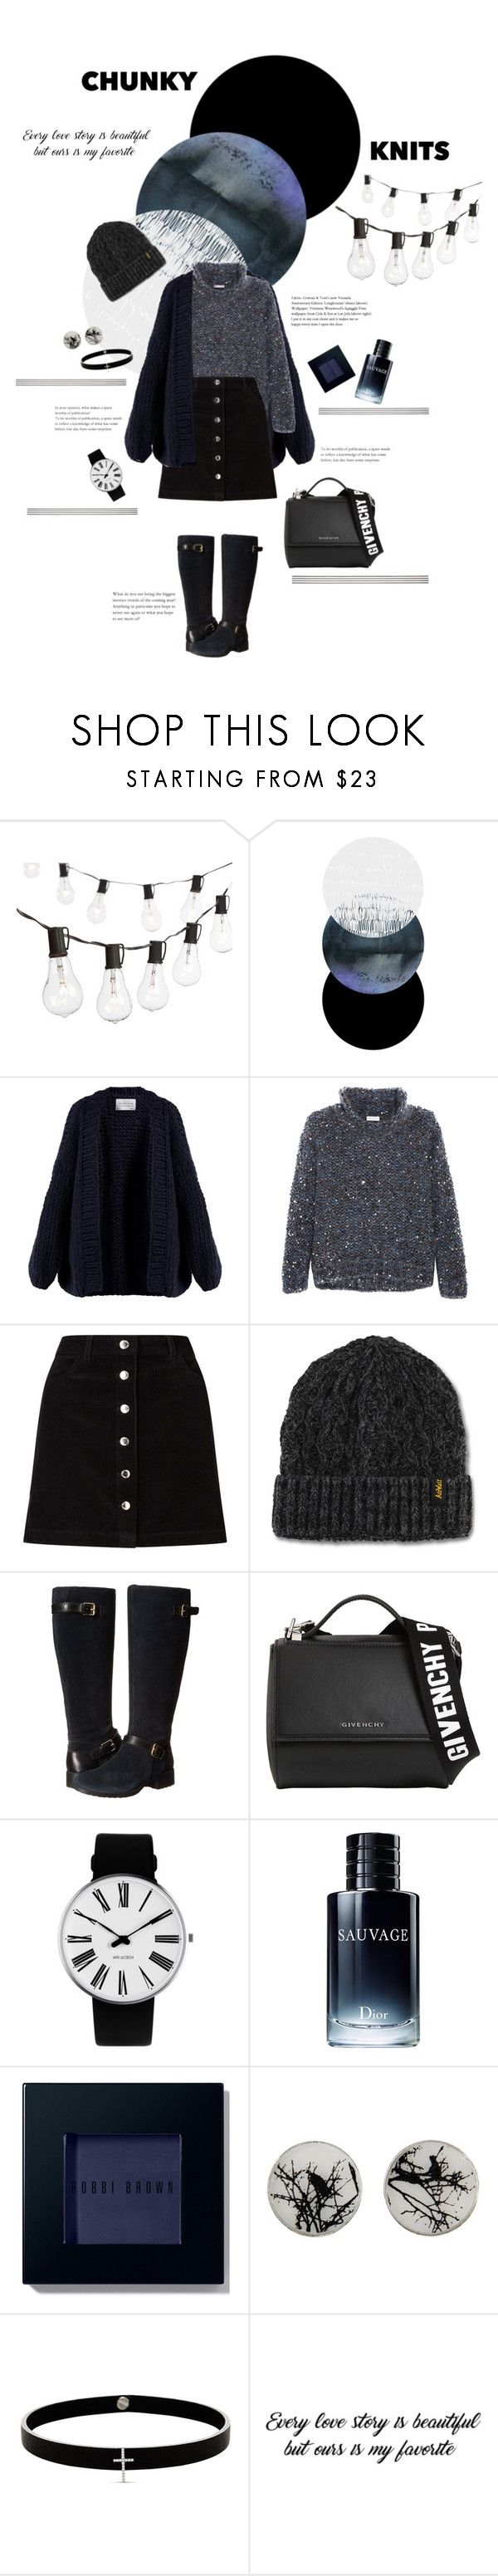 """{Chunky} Knitsʕ•ᴥ•ʔ"" by mojitae ❤ liked on Polyvore featuring Crate and Barrel, I Love Mr. Mittens, Brunello Cucinelli, Miss Selfridge, Dr. Martens, Cole Haan, Givenchy, Rosendahl, Christian Dior and Bobbi Brown Cosmetics"